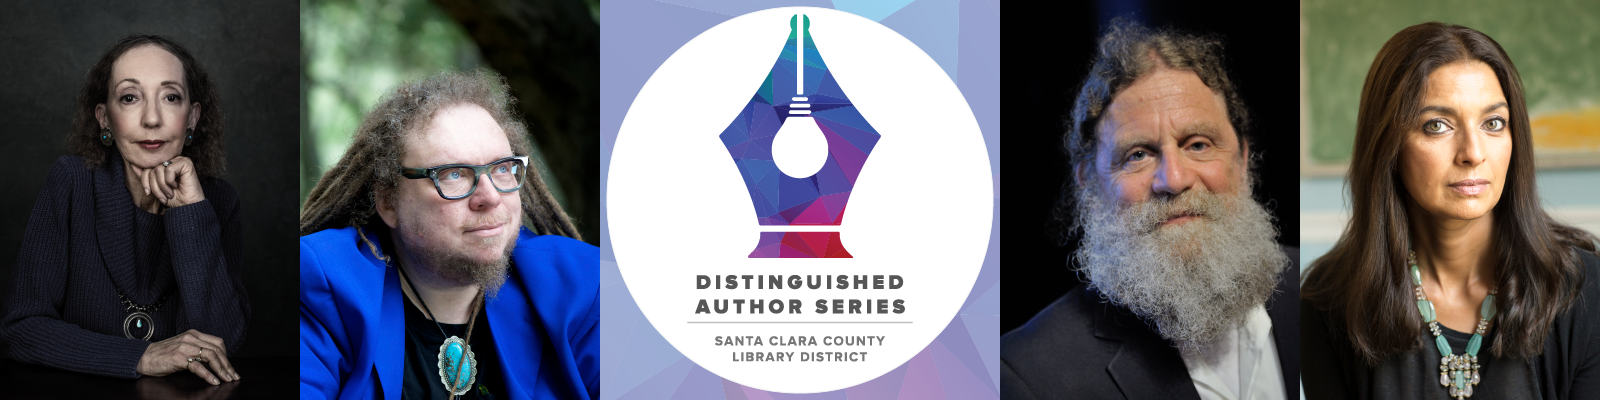 Distinguished Author Series banner